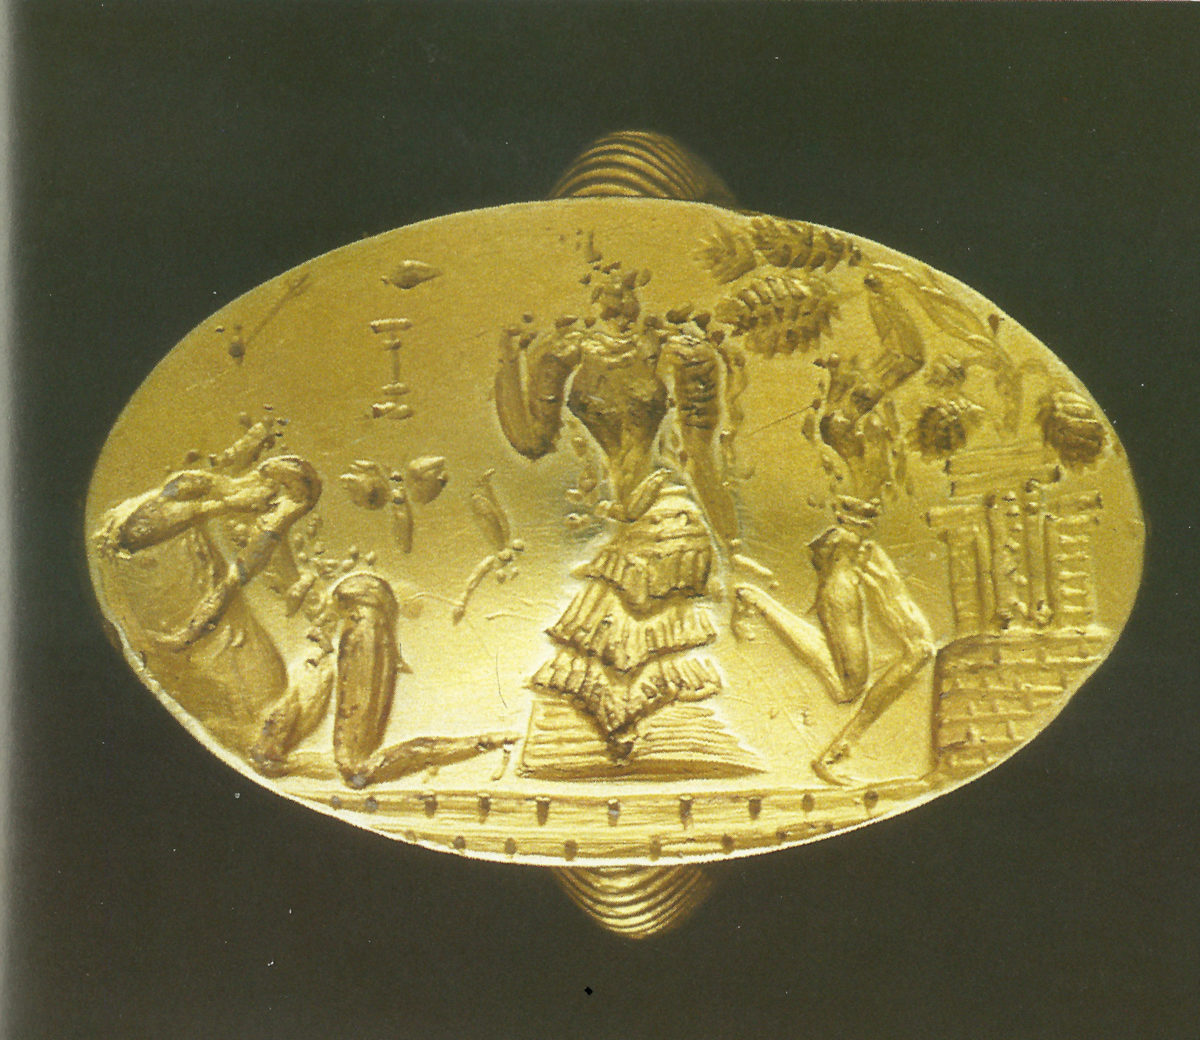 Fig. 35. The gold ring of Archanes. Found in the Fourni cemetery, placed on the deceased woman's breast. Late Bronze Age (1600-1500 B.C.). Archaeological Museum of Heraklion, AE 989.